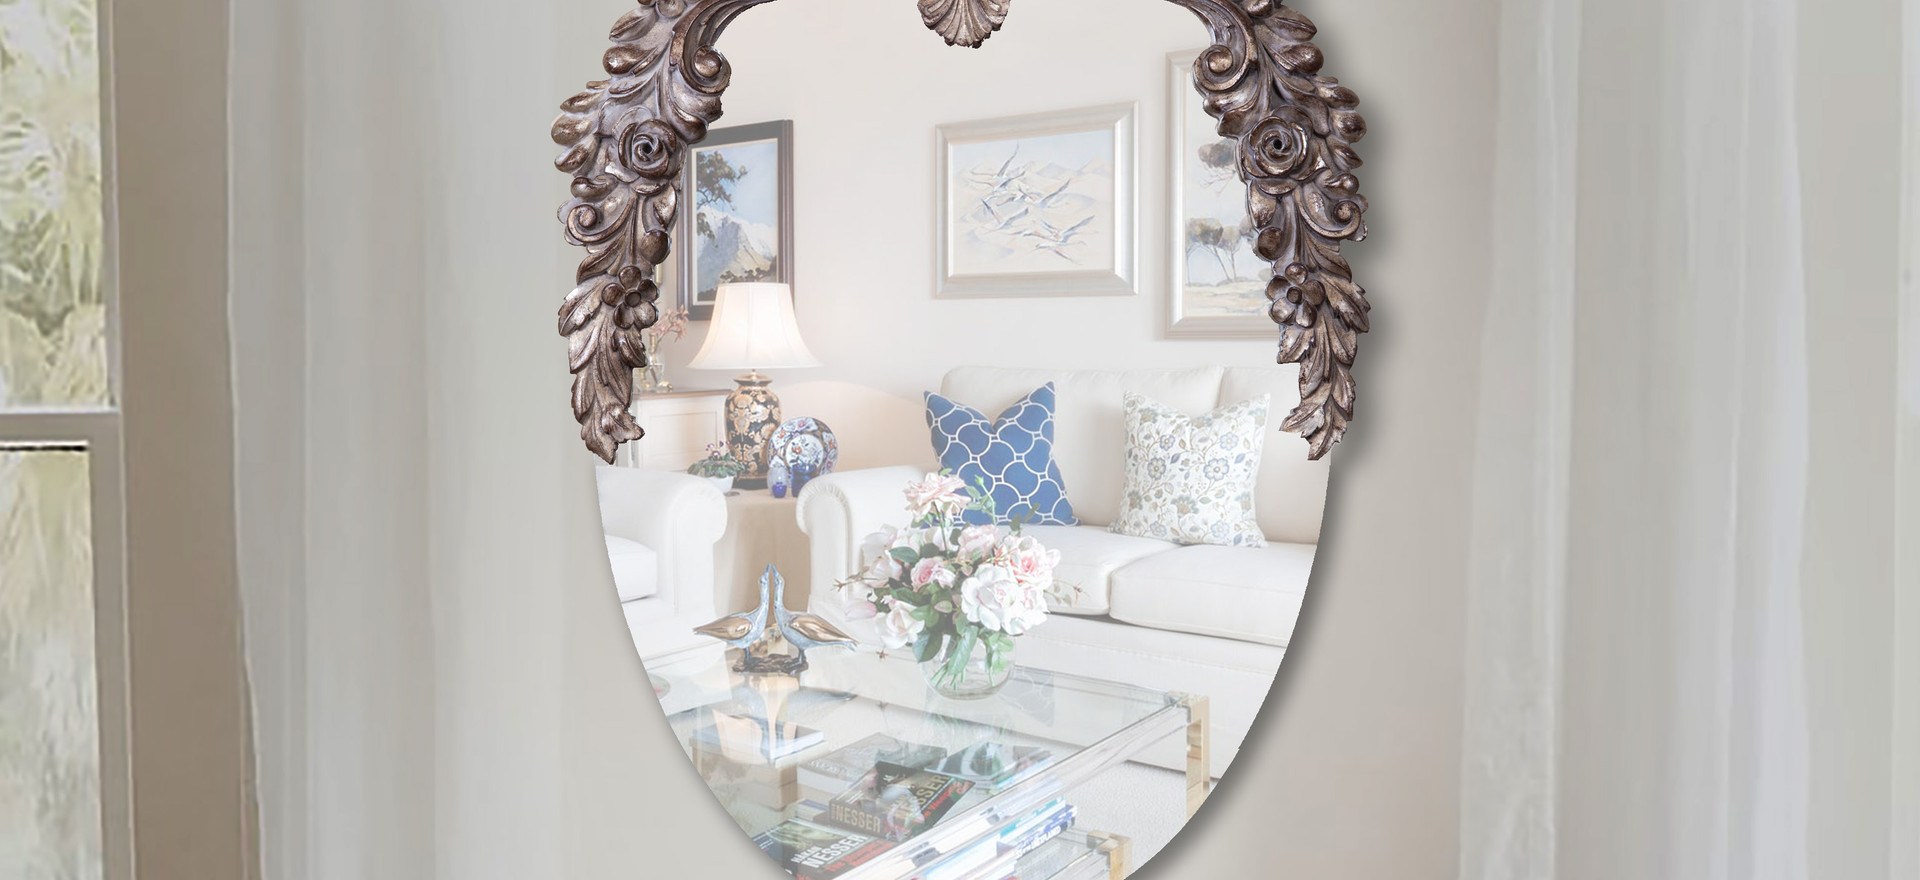 Frontoval Mirror